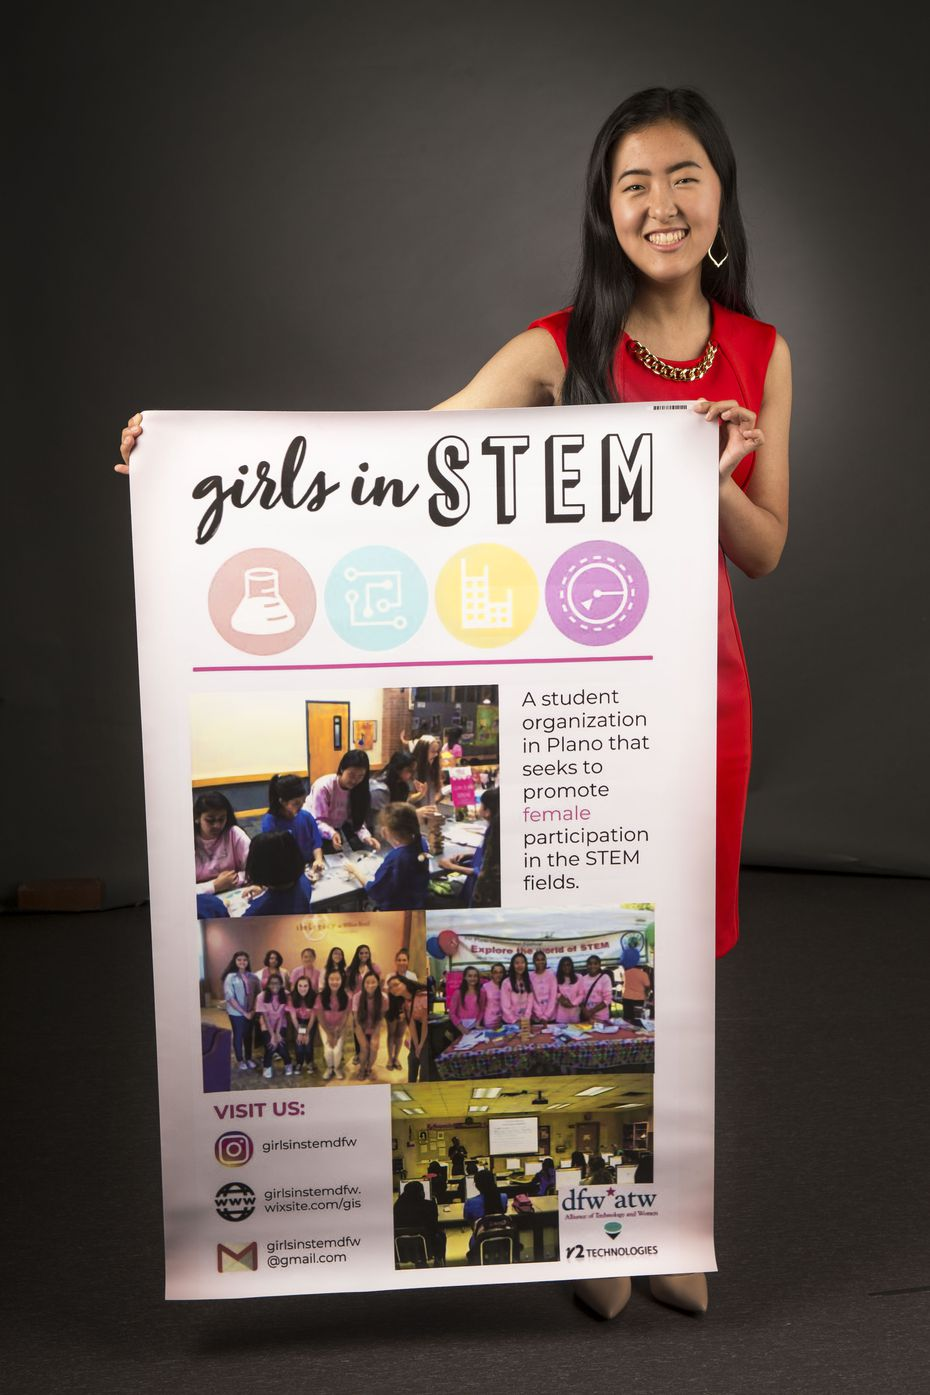 Alice Hou, founder of Girls in STEM, poses for a photograph at The Dallas Morning News on July 24, 2018.